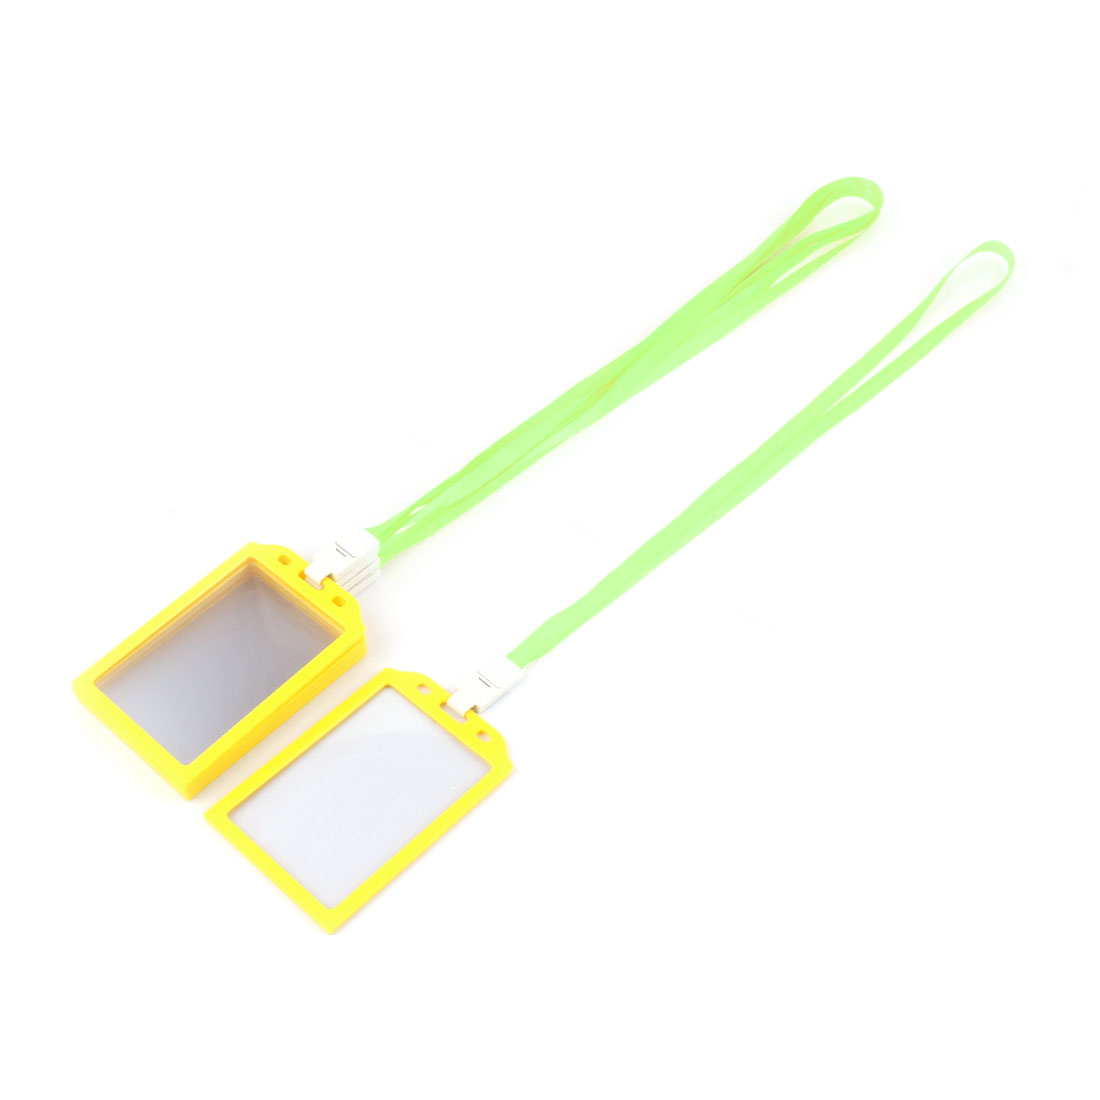 Factory Worker Plastic Rectangle Name ID Card Tag Badge Holder Container Light Green 5 Pcs